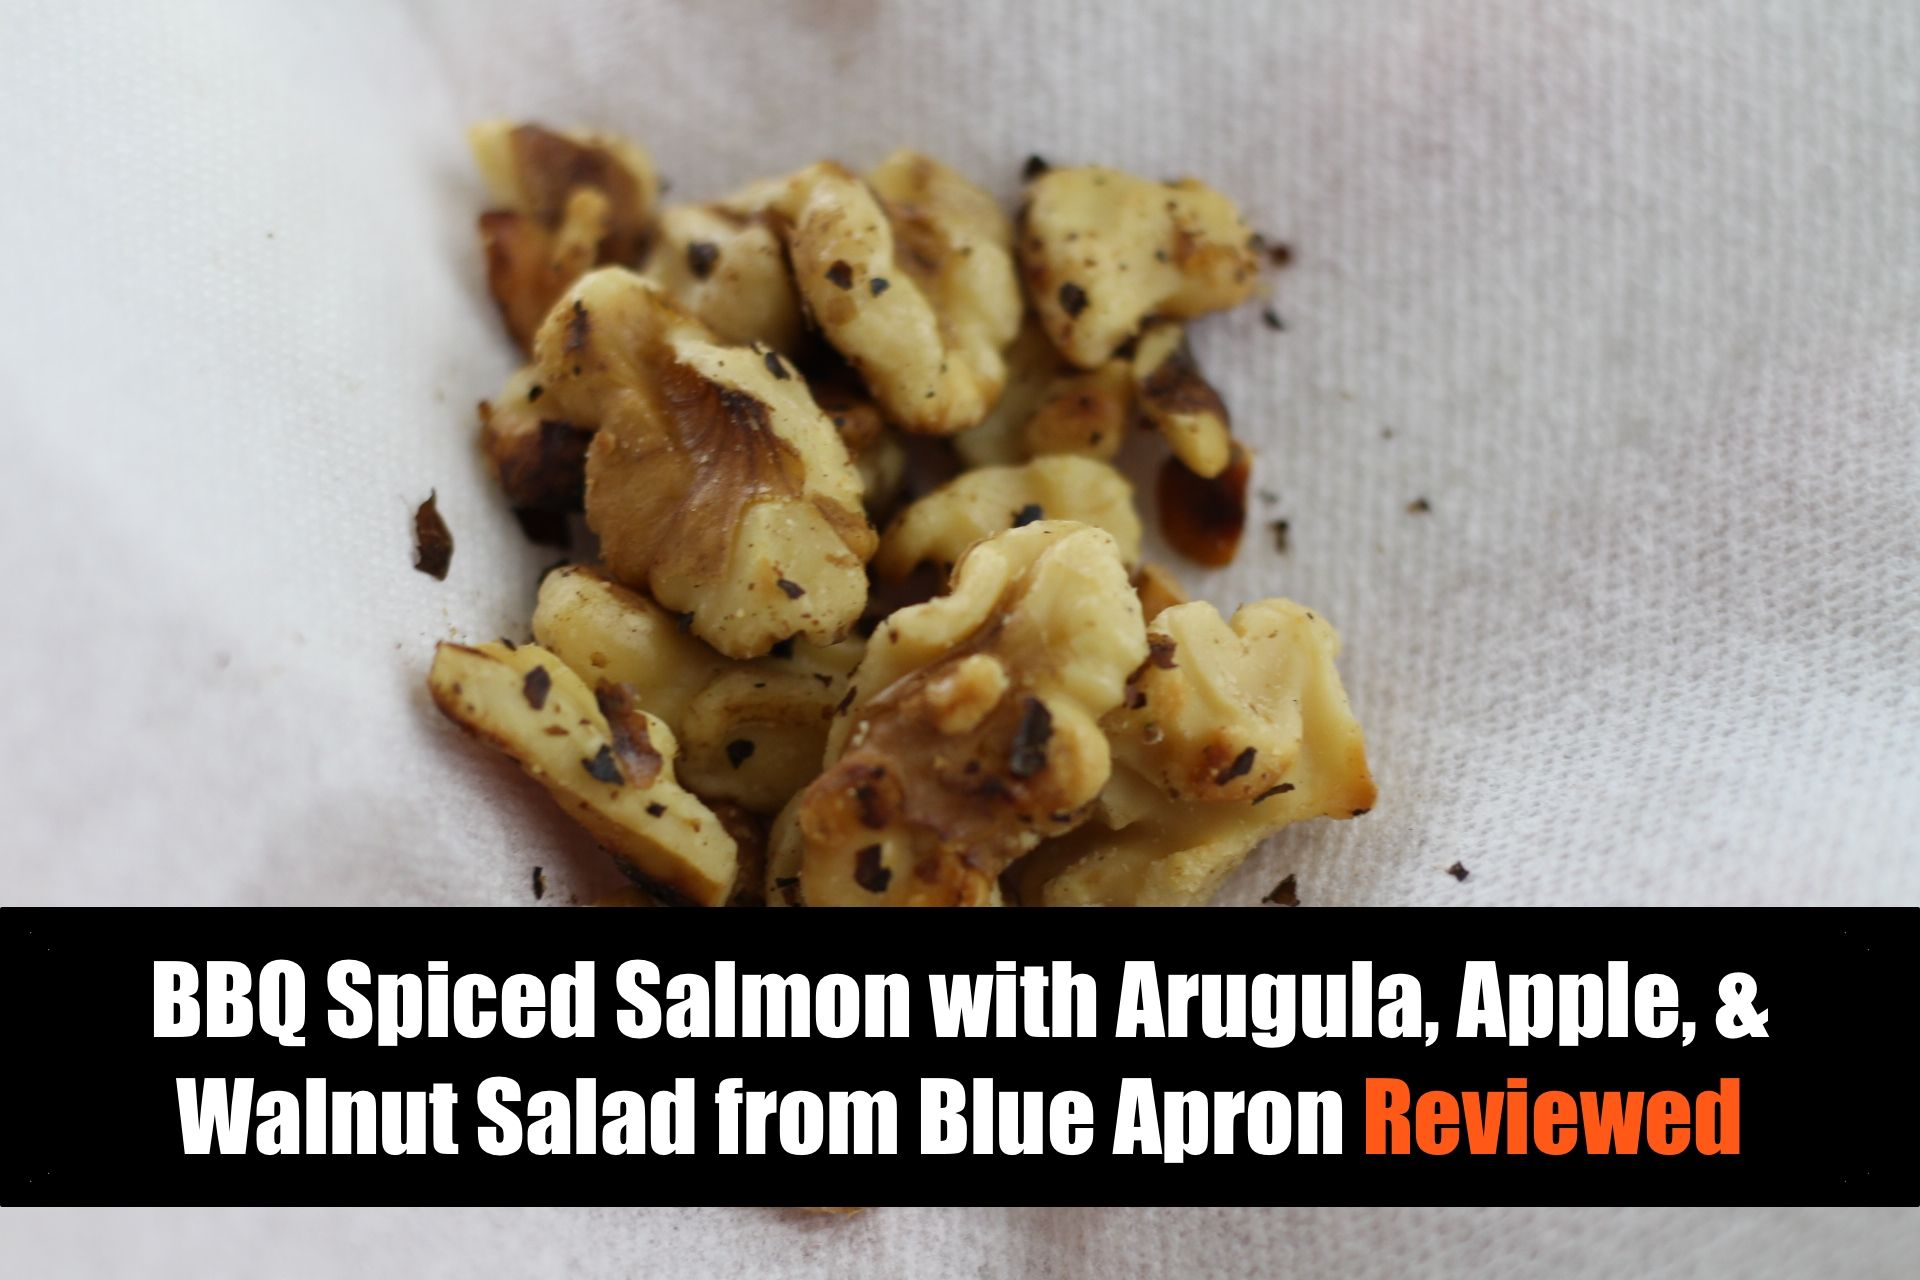 Blue apron yuzu cod - 17 Best Images About Blue Apron Dinners On Pinterest Baked Sweet Potatoes Apple Walnut Salad And Roast Chicken